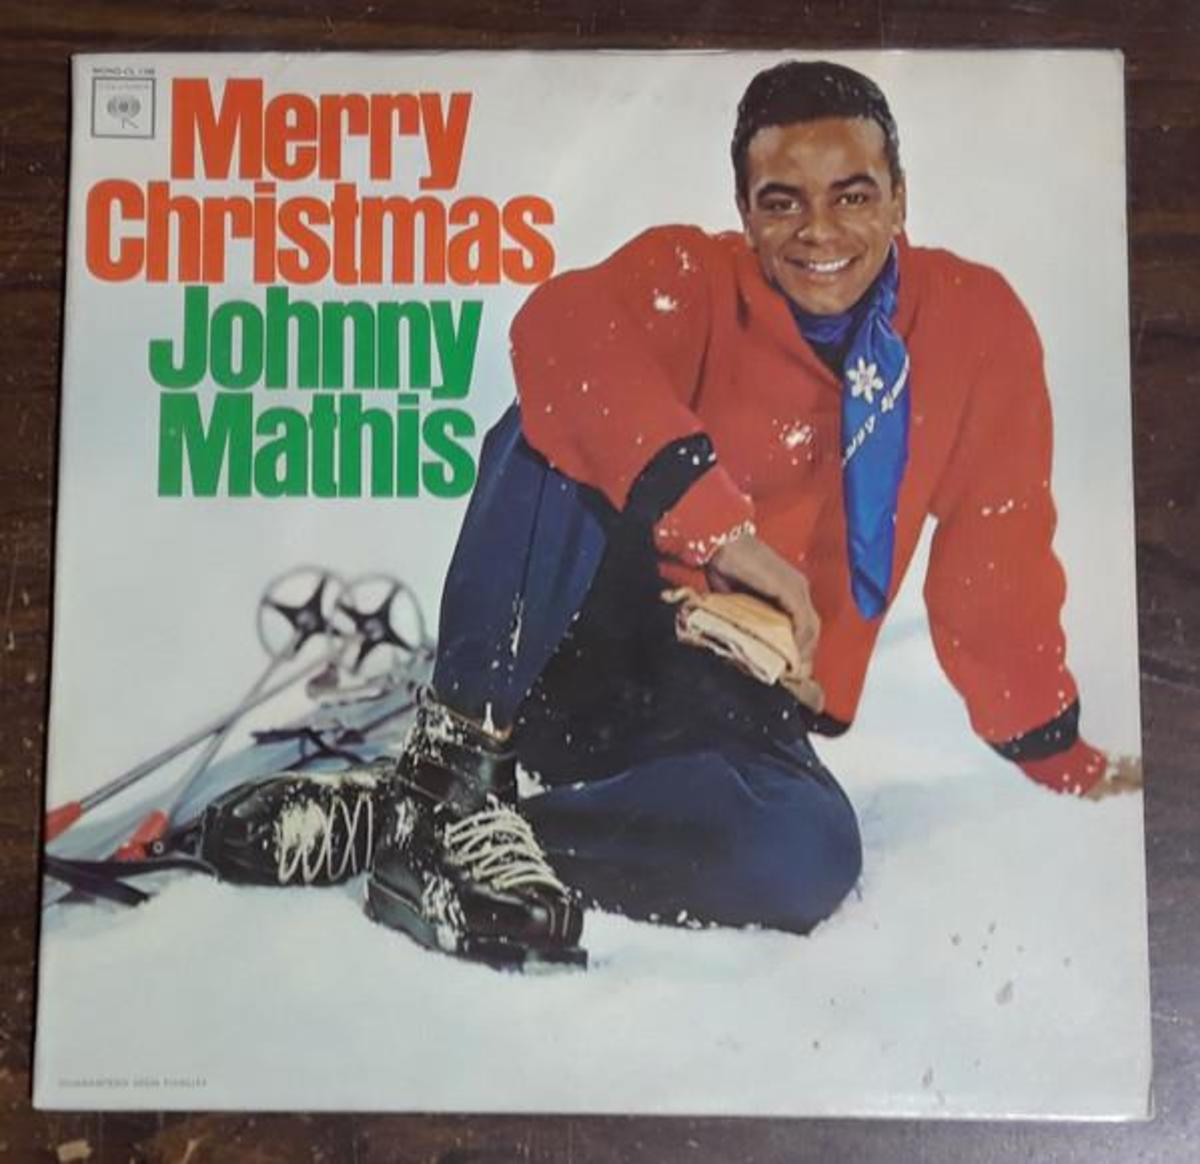 Johnny Mathis—Merry Christmas